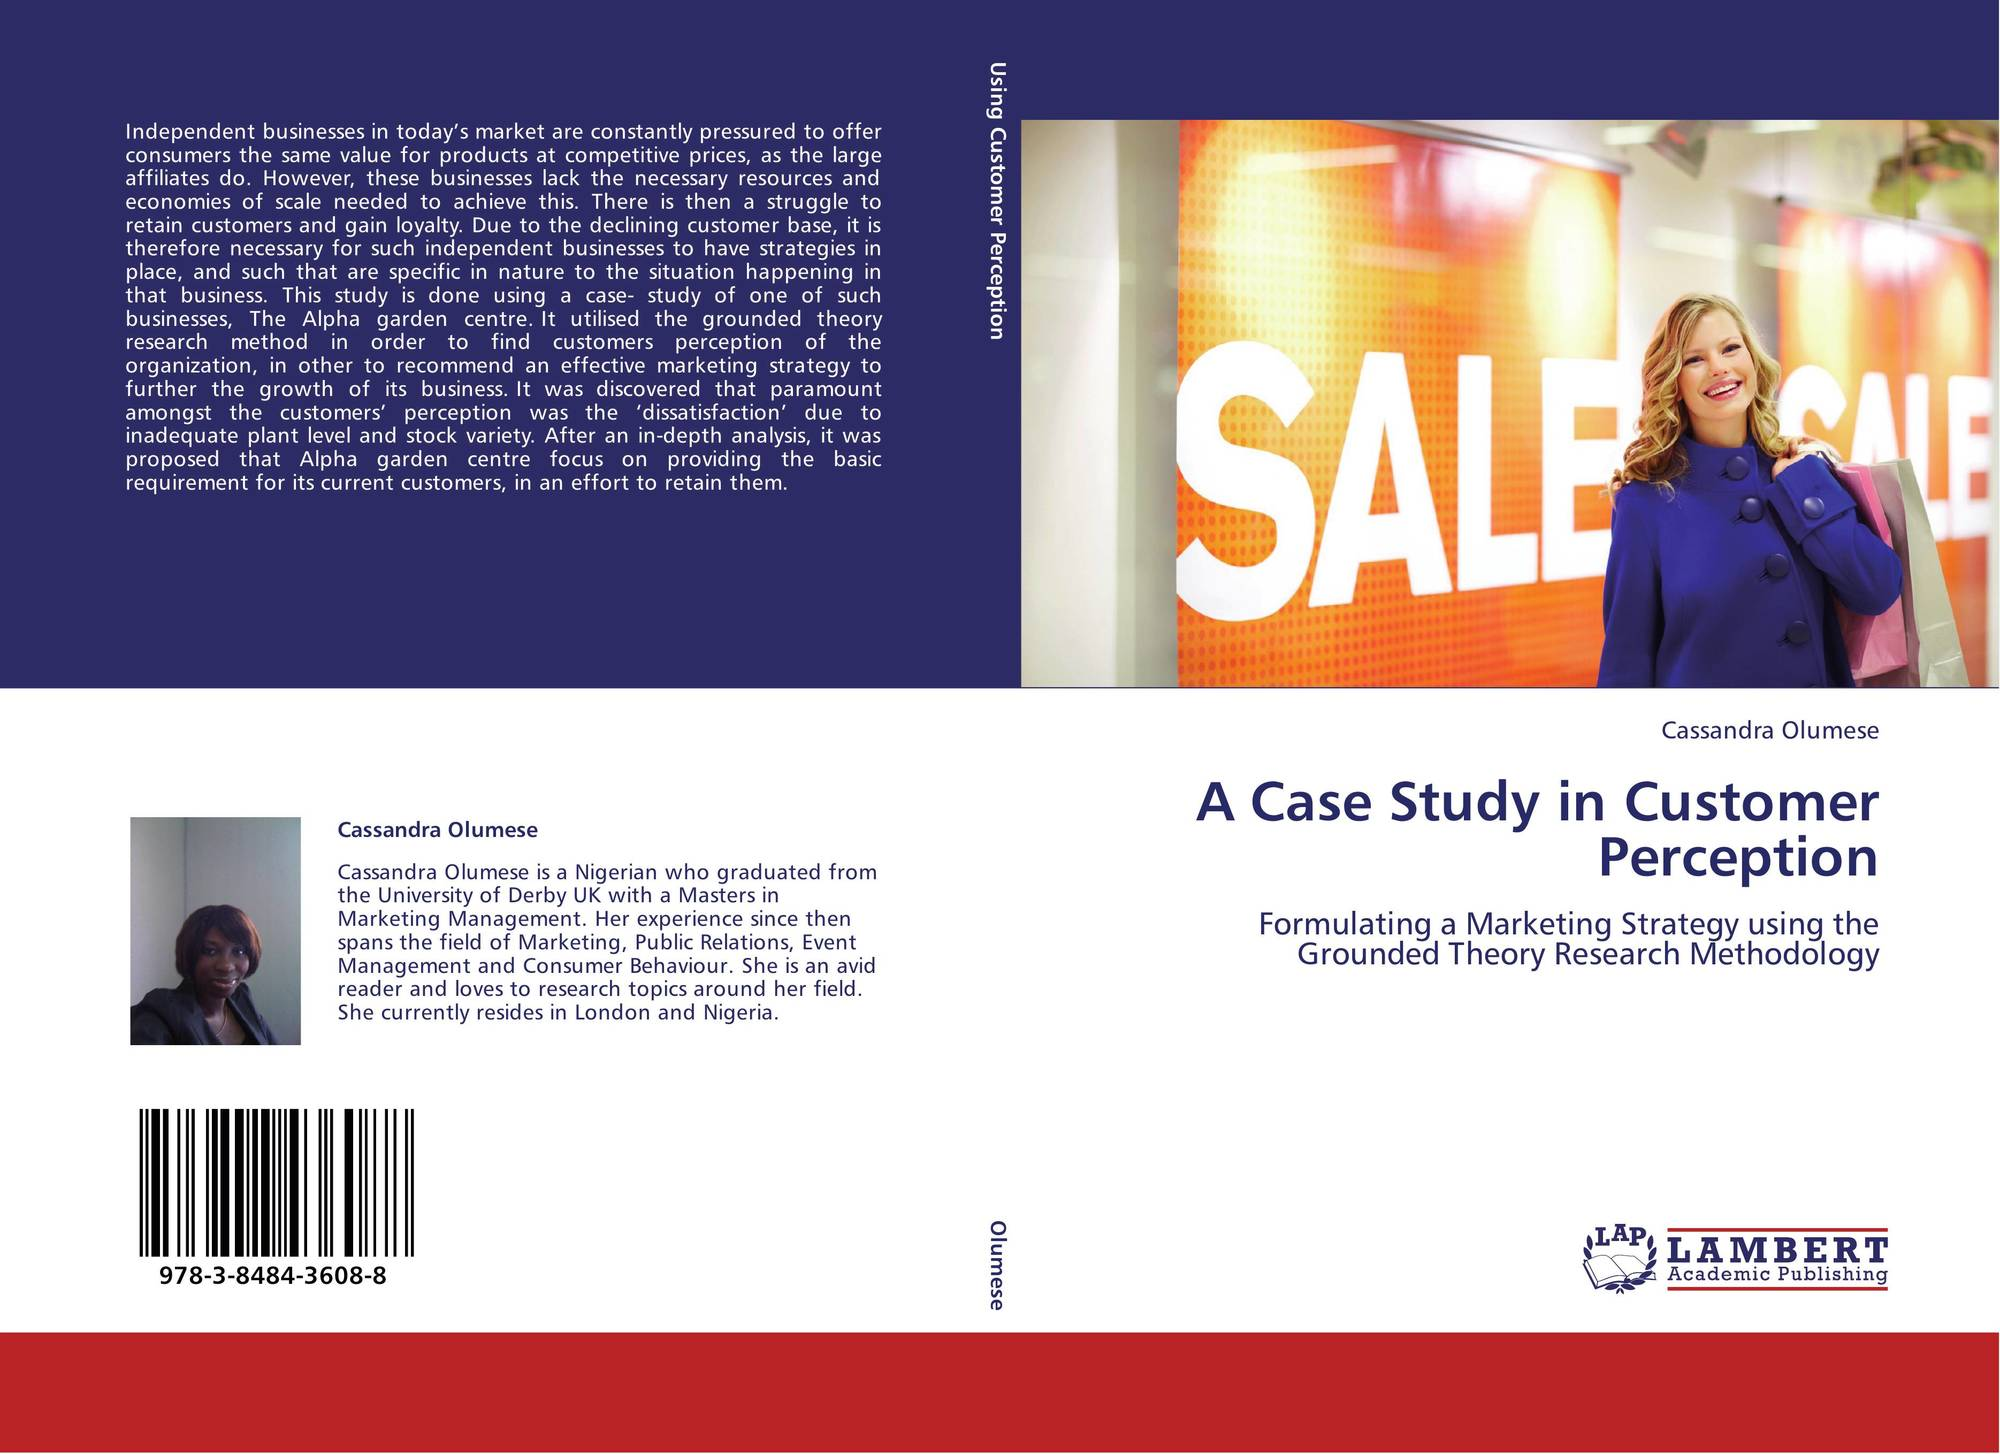 perception case study This is a mixed methods study looking at the perception of student affairs  administrators on the value of student academic organizations as a retention  technique.